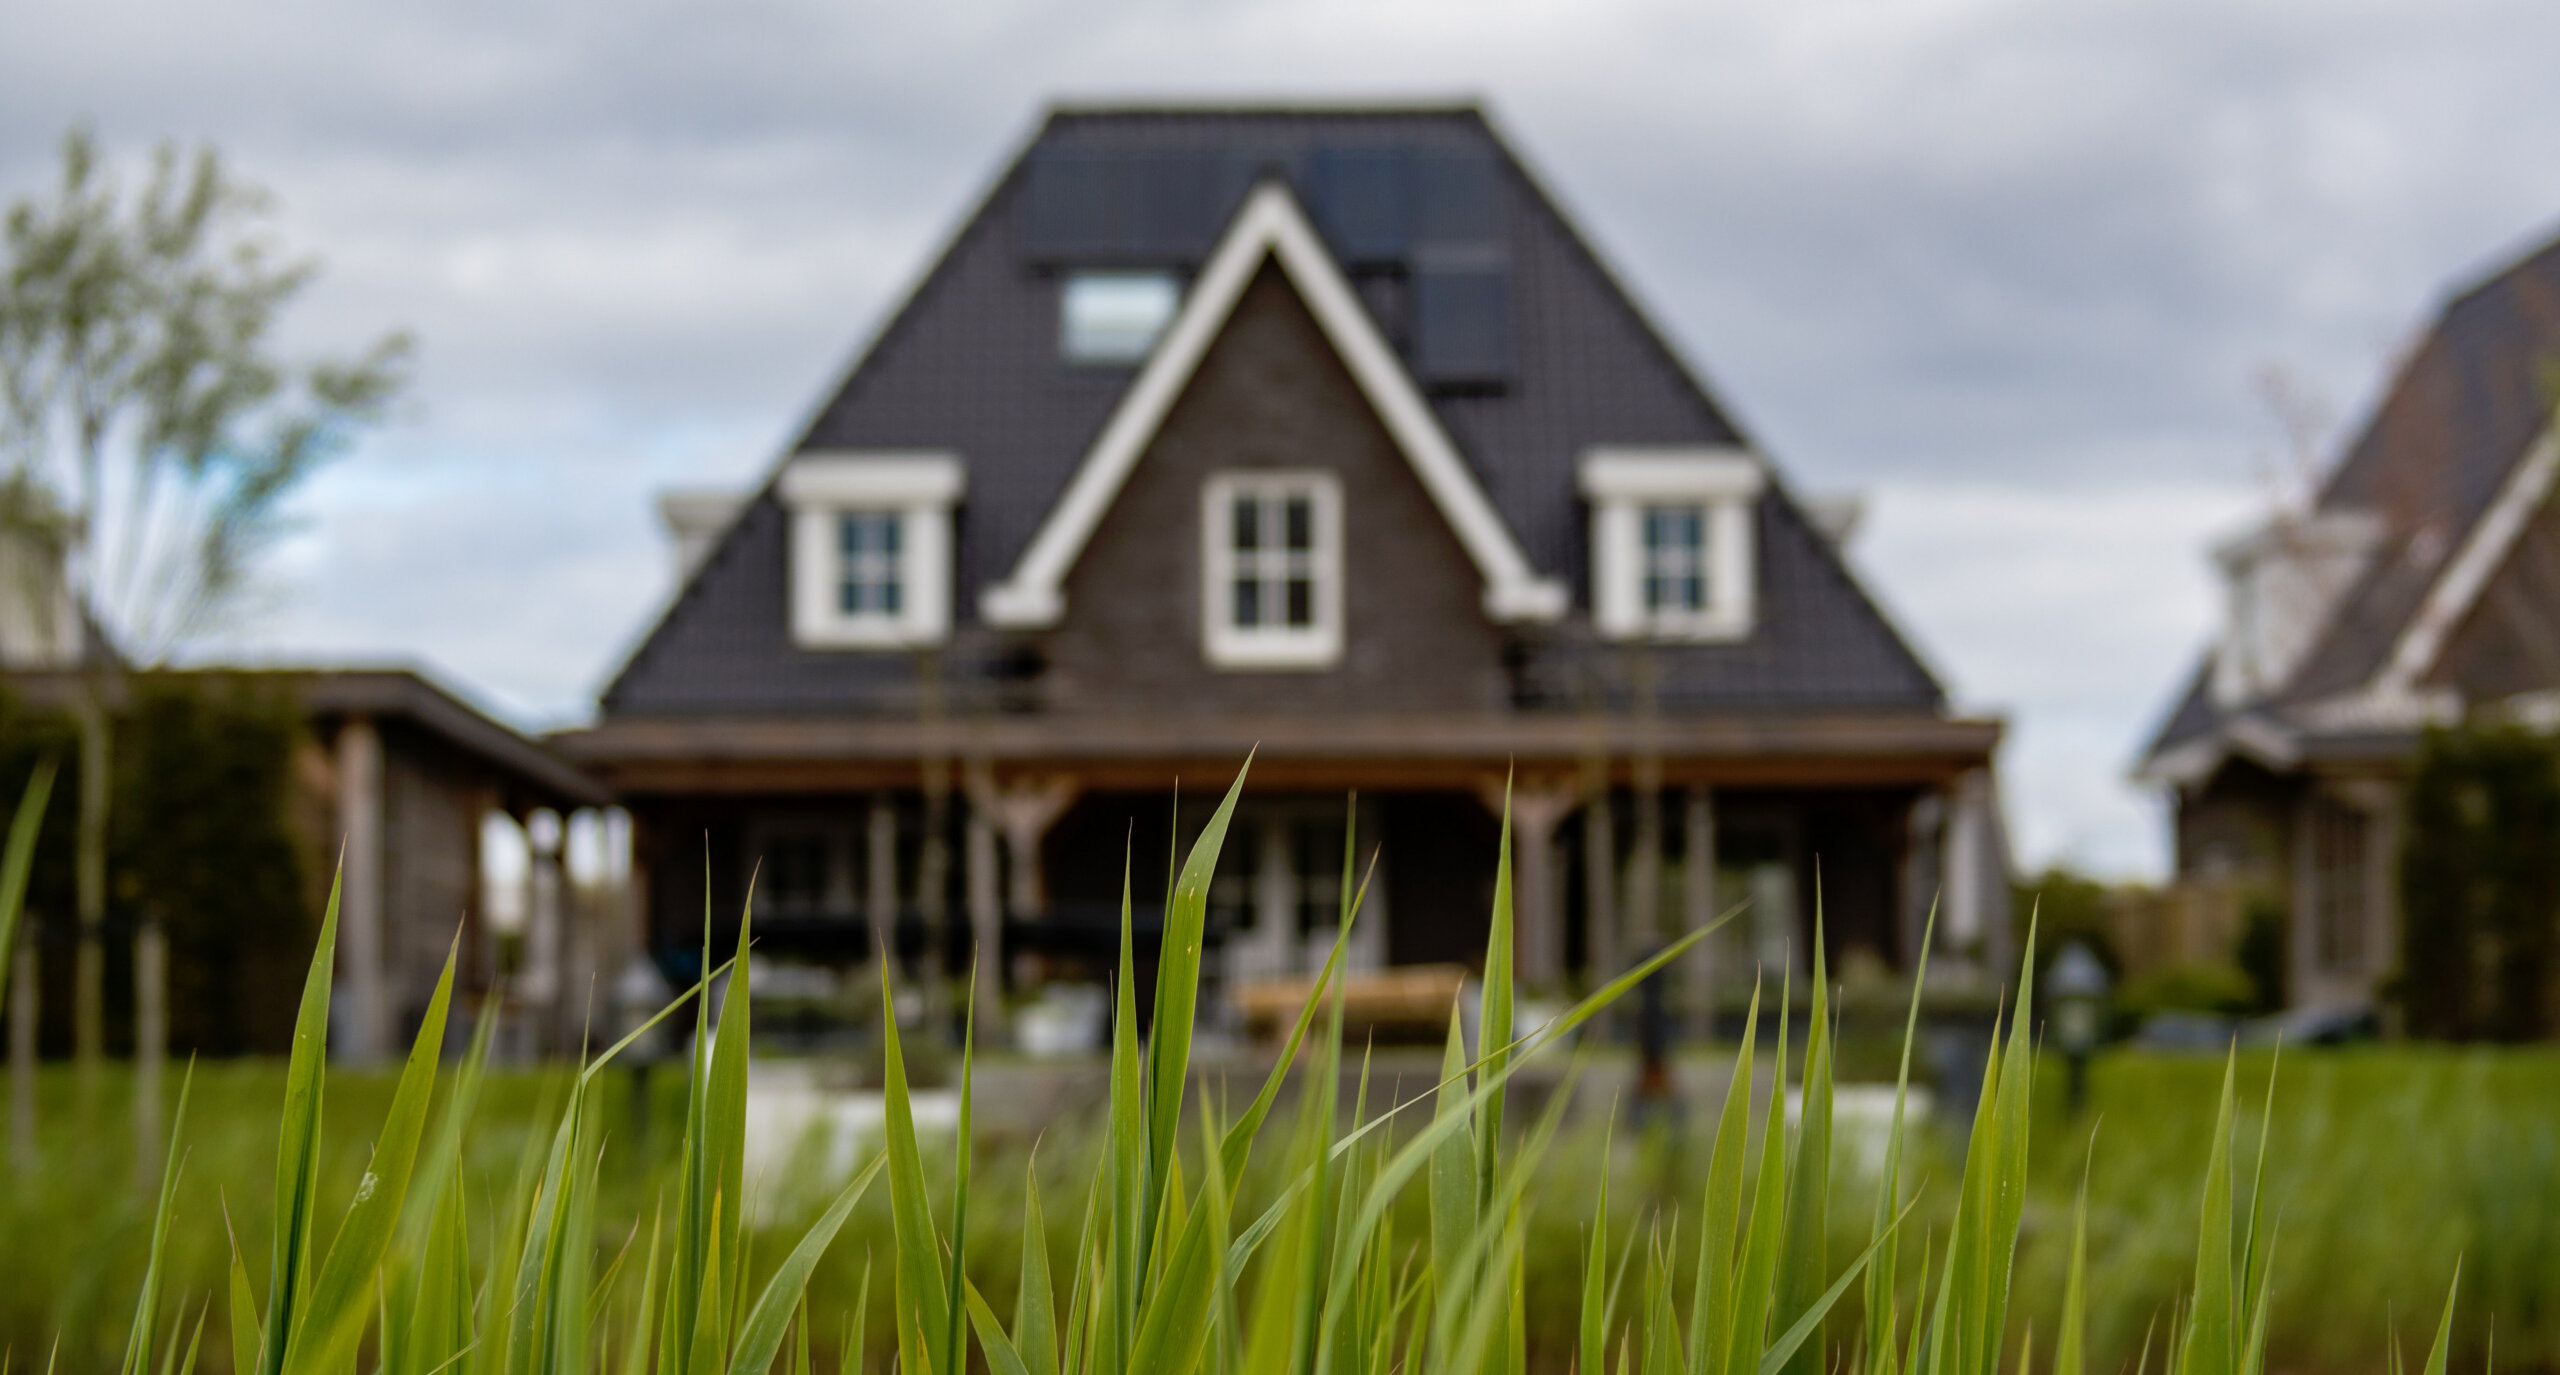 Out of focus house with grass in front